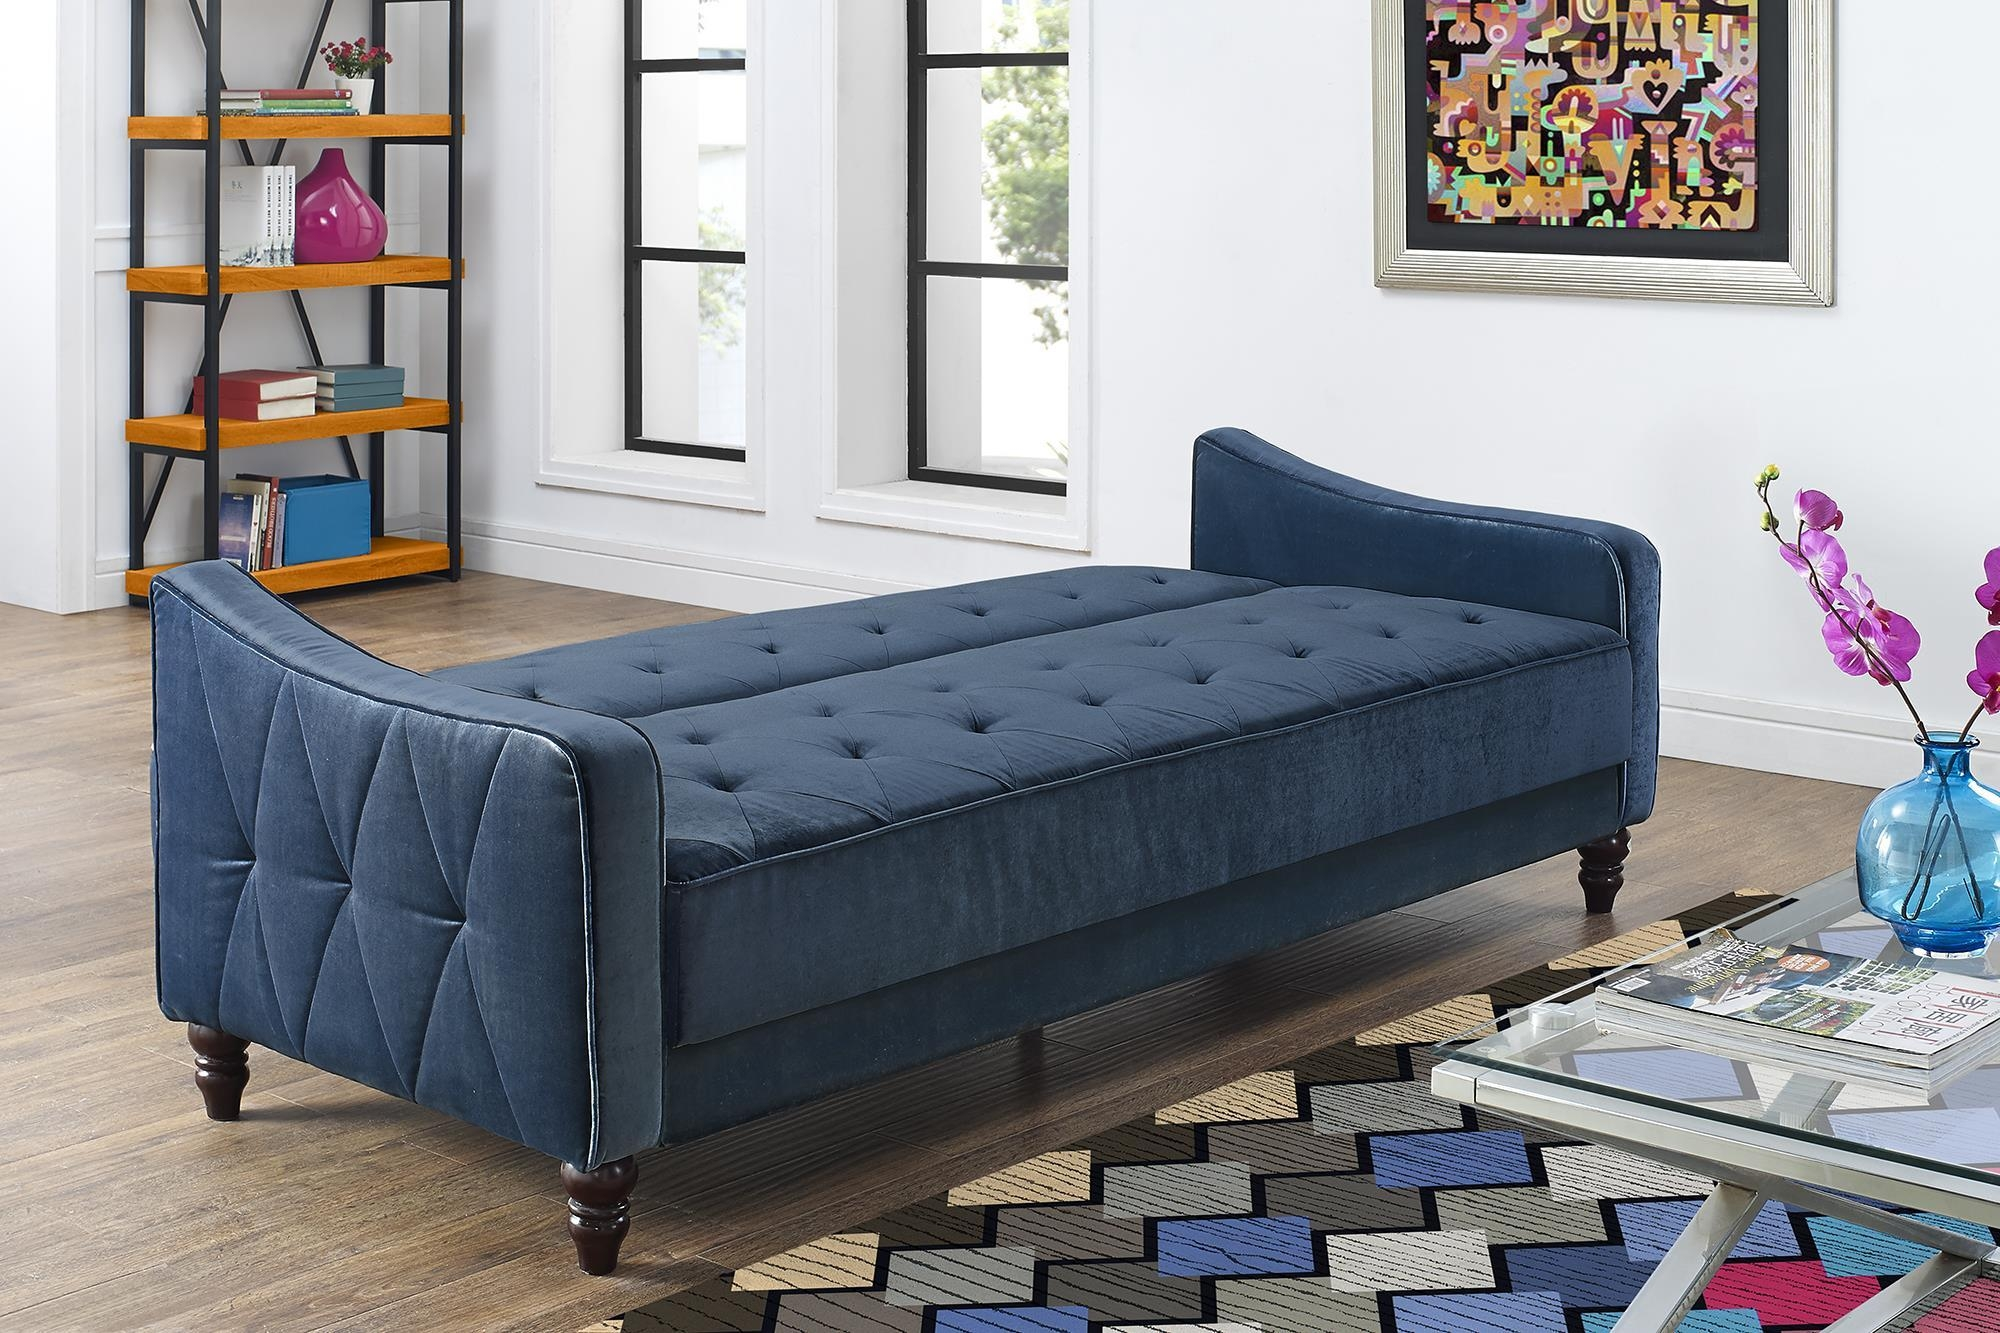 Furniture Amusing Walmart Sofas For Home Ideas Press Blue Tufted Pertaining To Blue Tufted Sofas (Image 9 of 22)